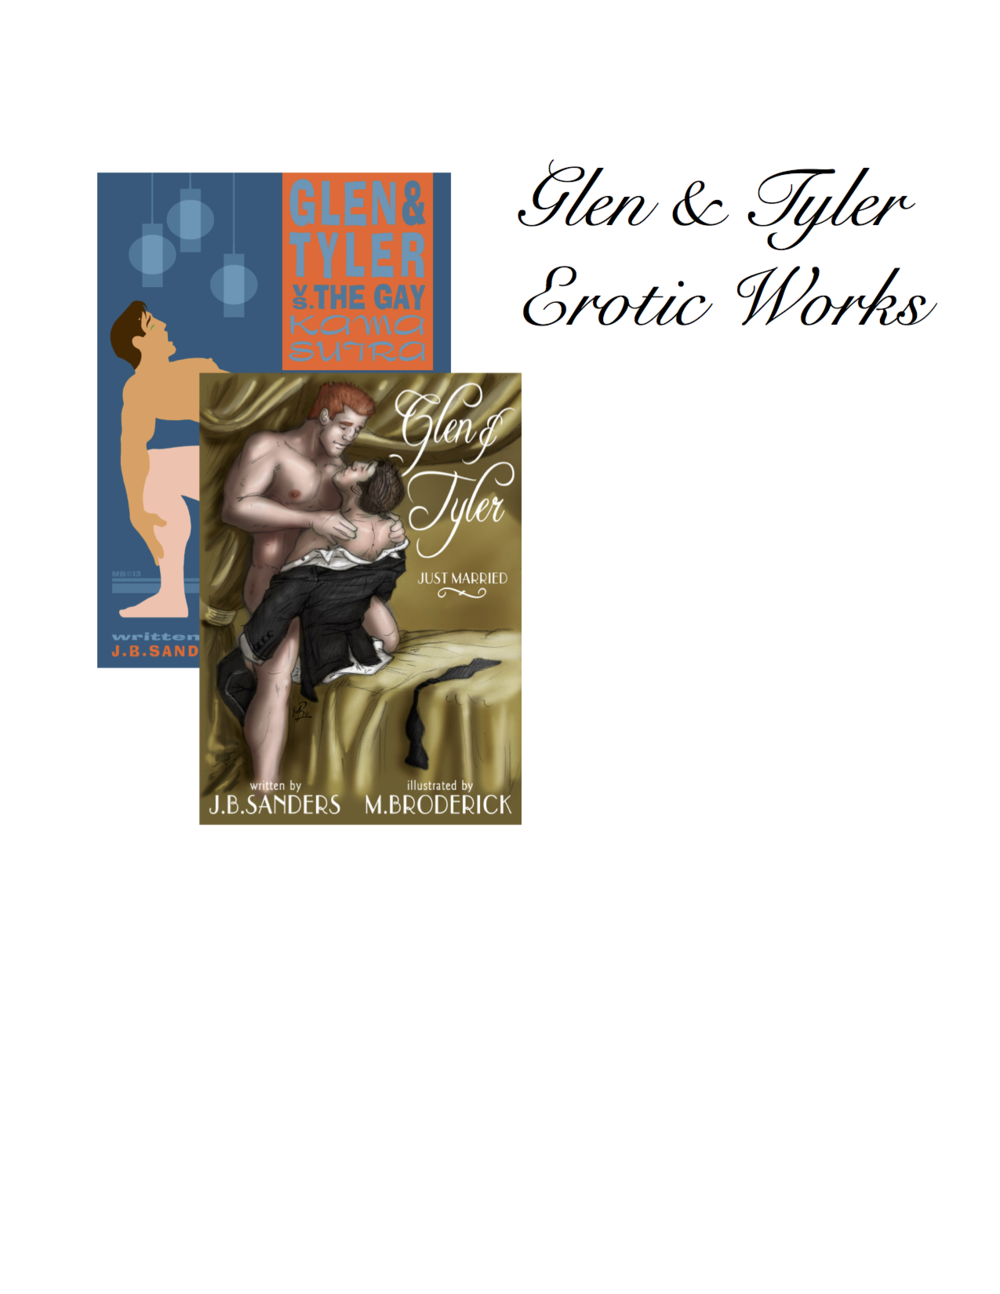 Glen & Tyler Illustrated Erotic Stories